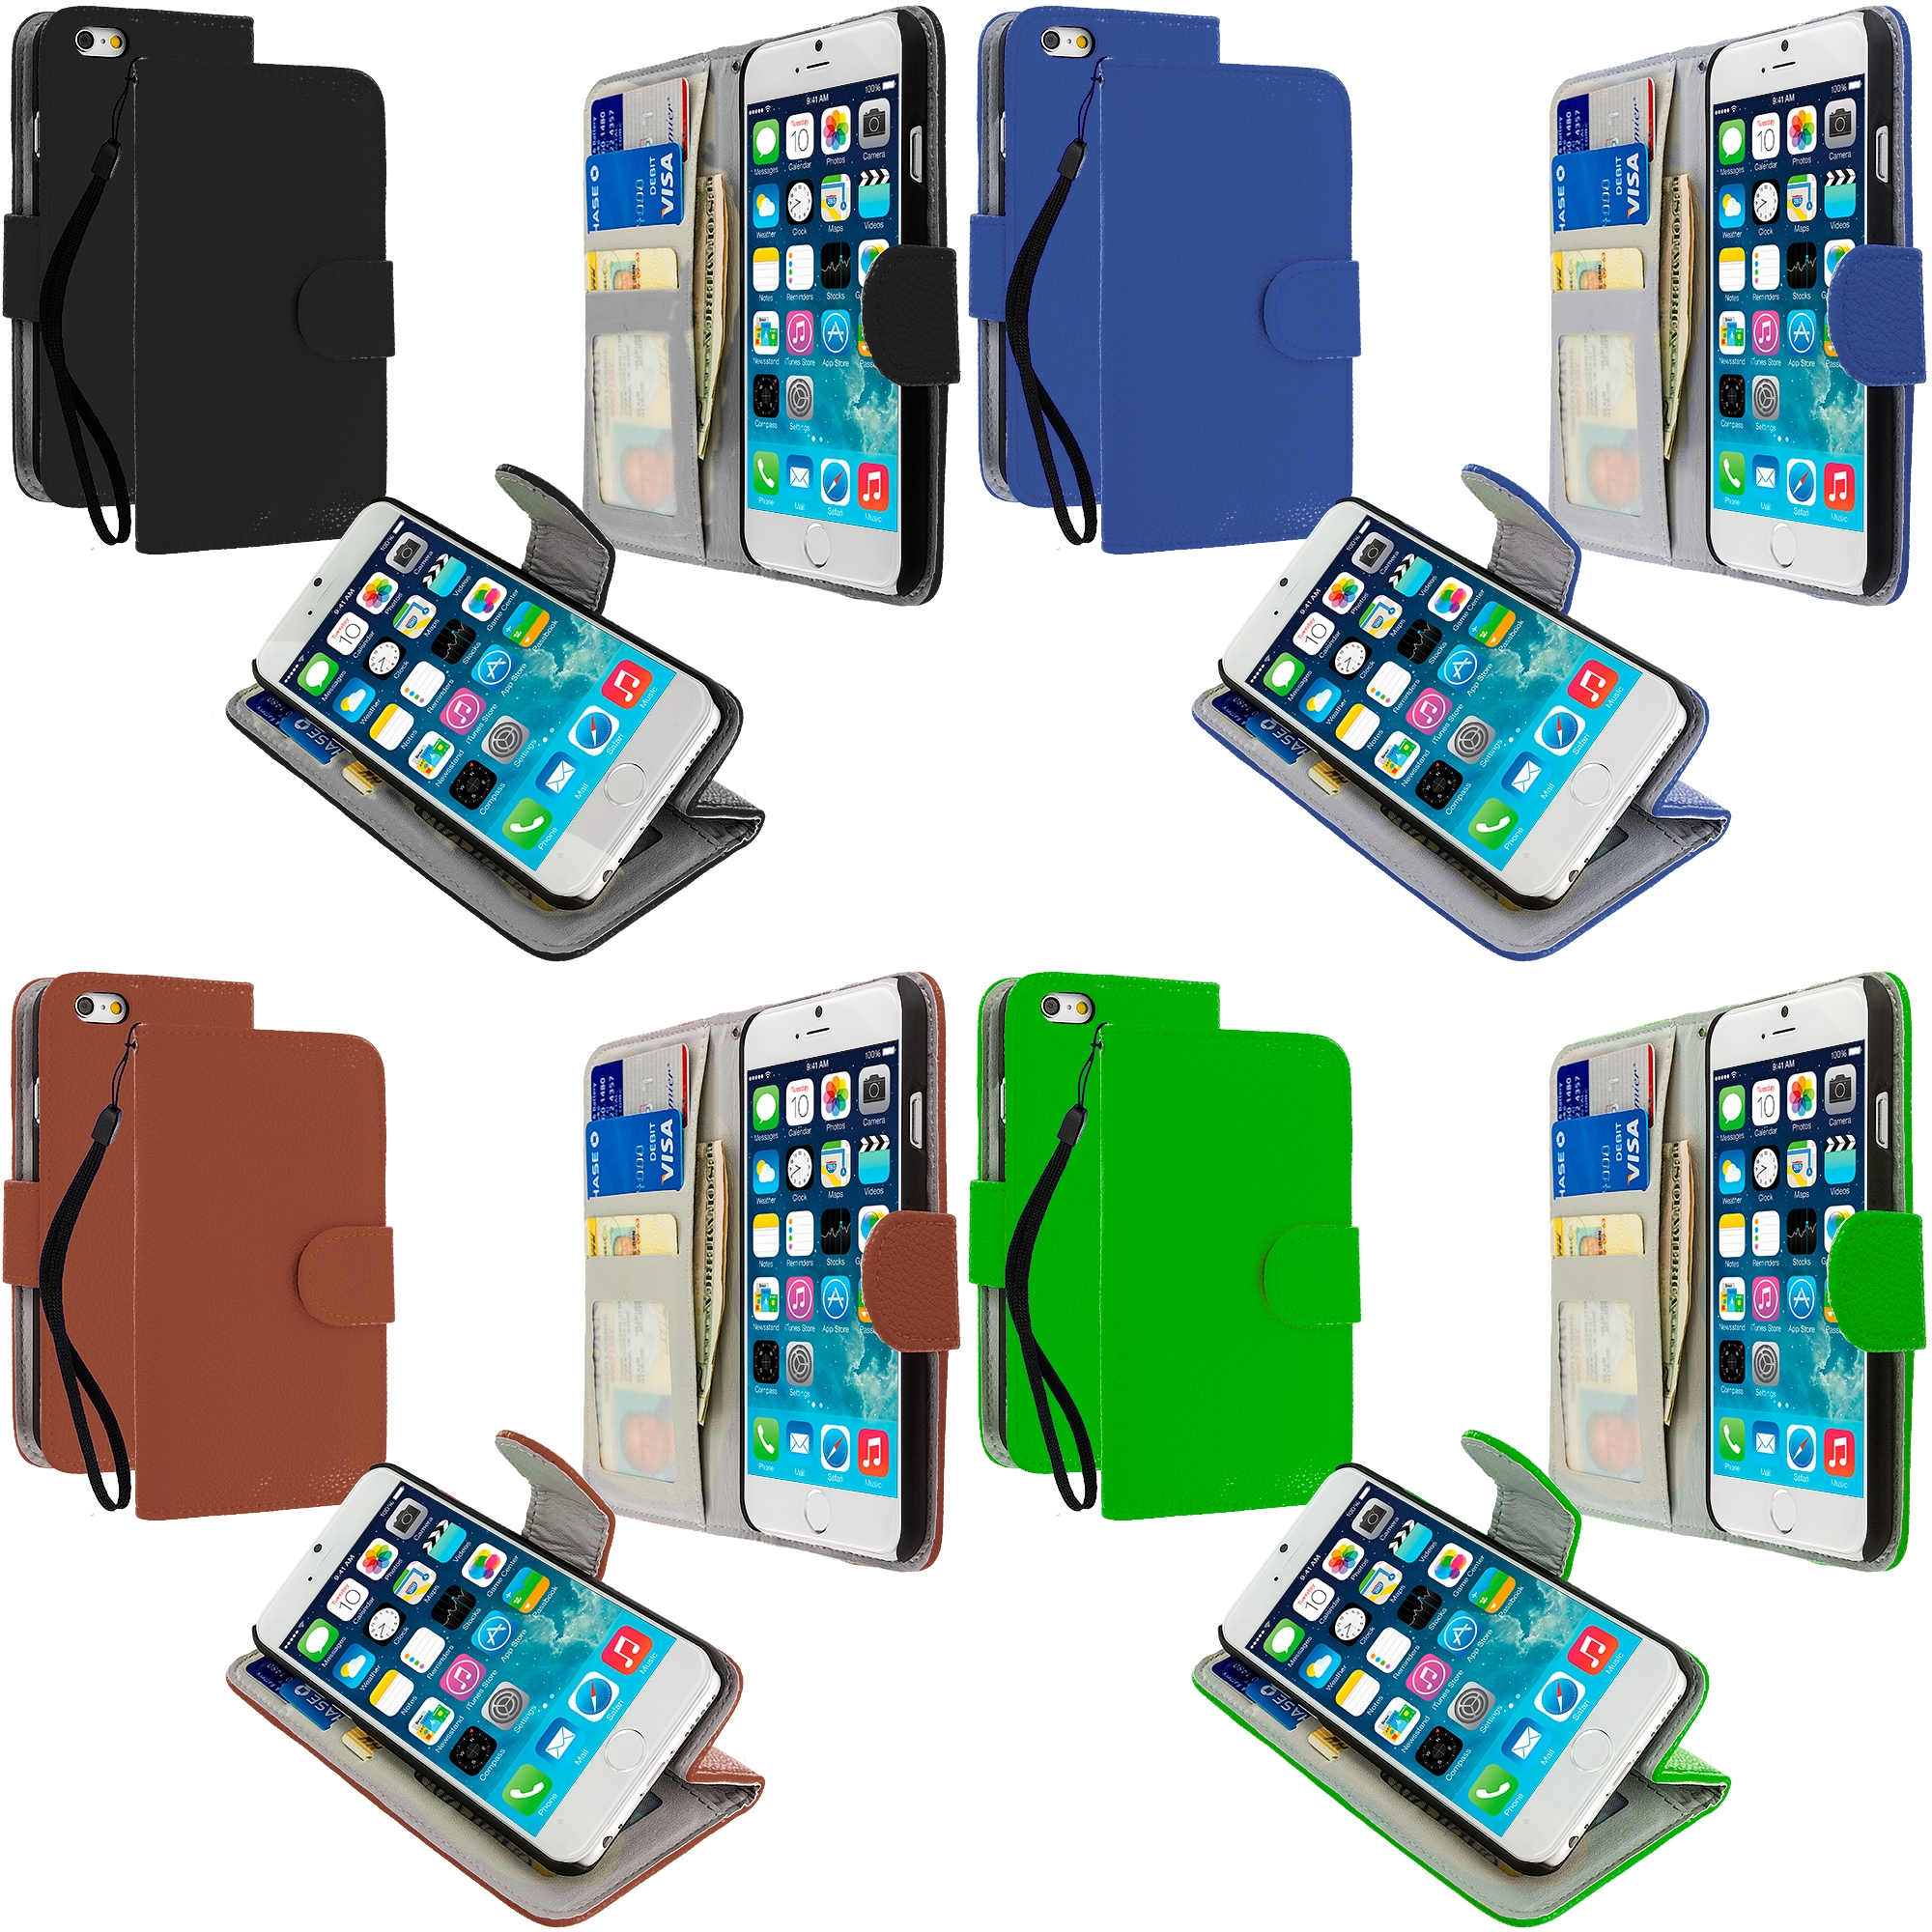 Apple iPhone 6 6S (4.7) 4 in 1 Combo Bundle Pack - Leather Wallet Pouch Case Cover with Slots